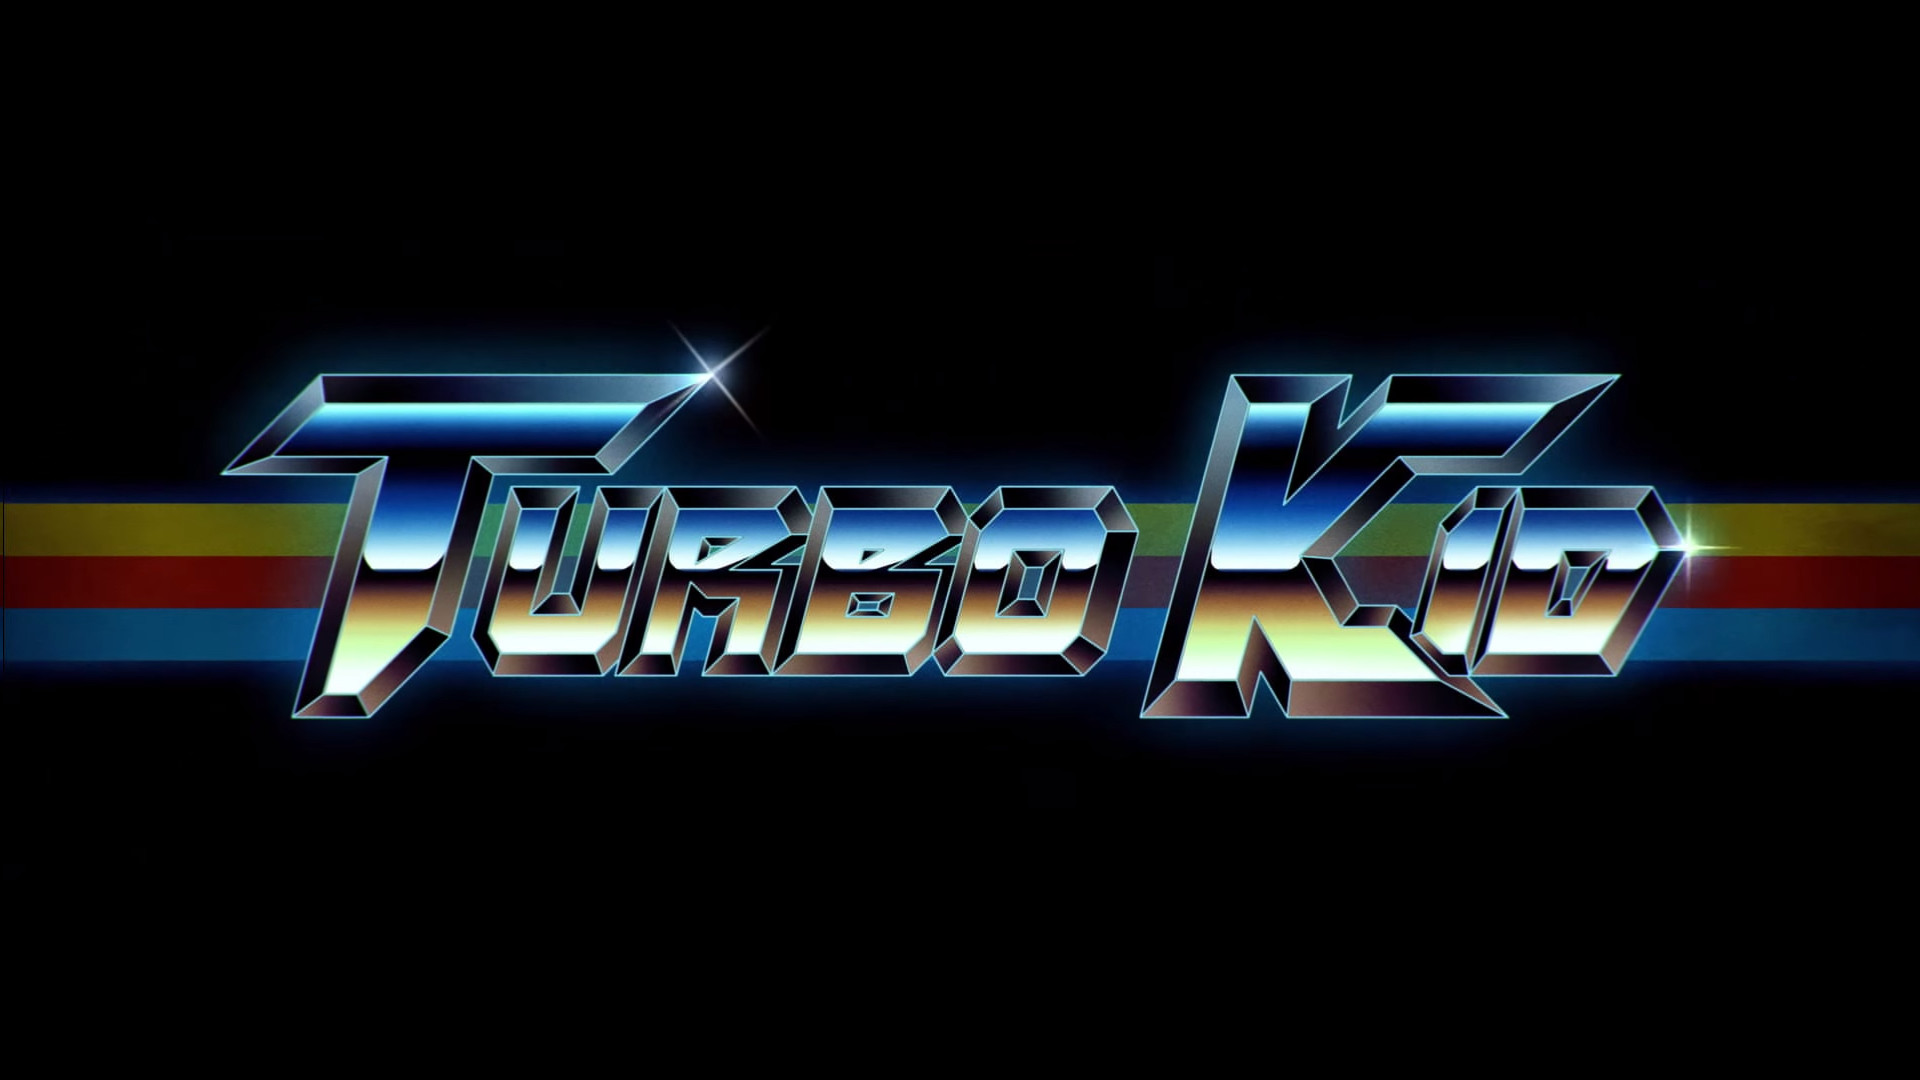 Res: 1920x1080, Turbo Kid Awesome Wallpaper Gallery #1950enuh